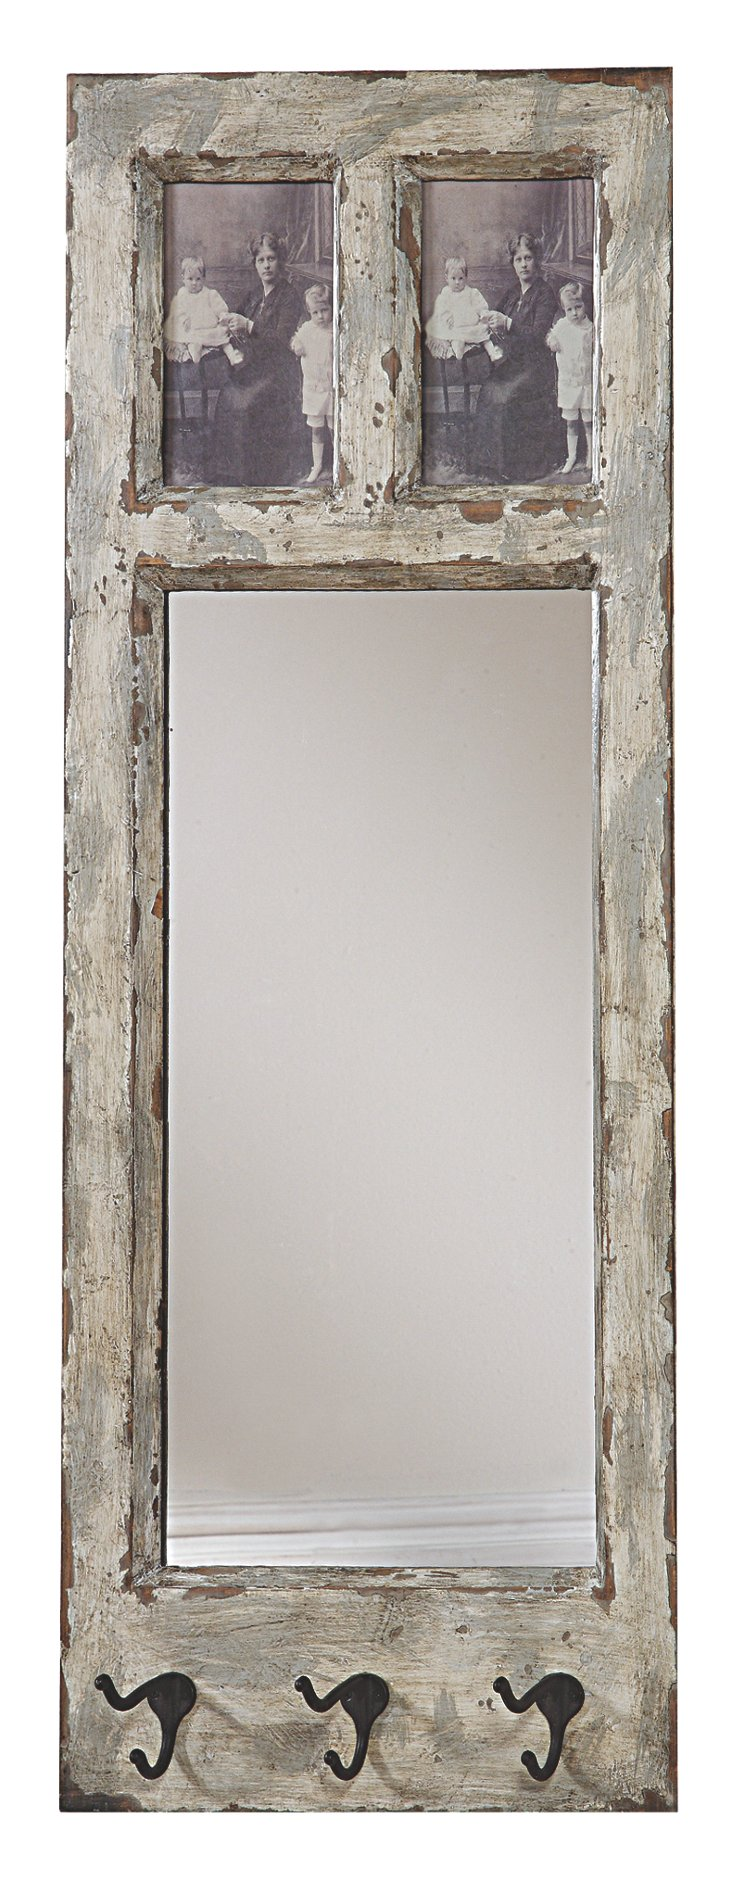 Rustic Mirror and Hook Wall Mount